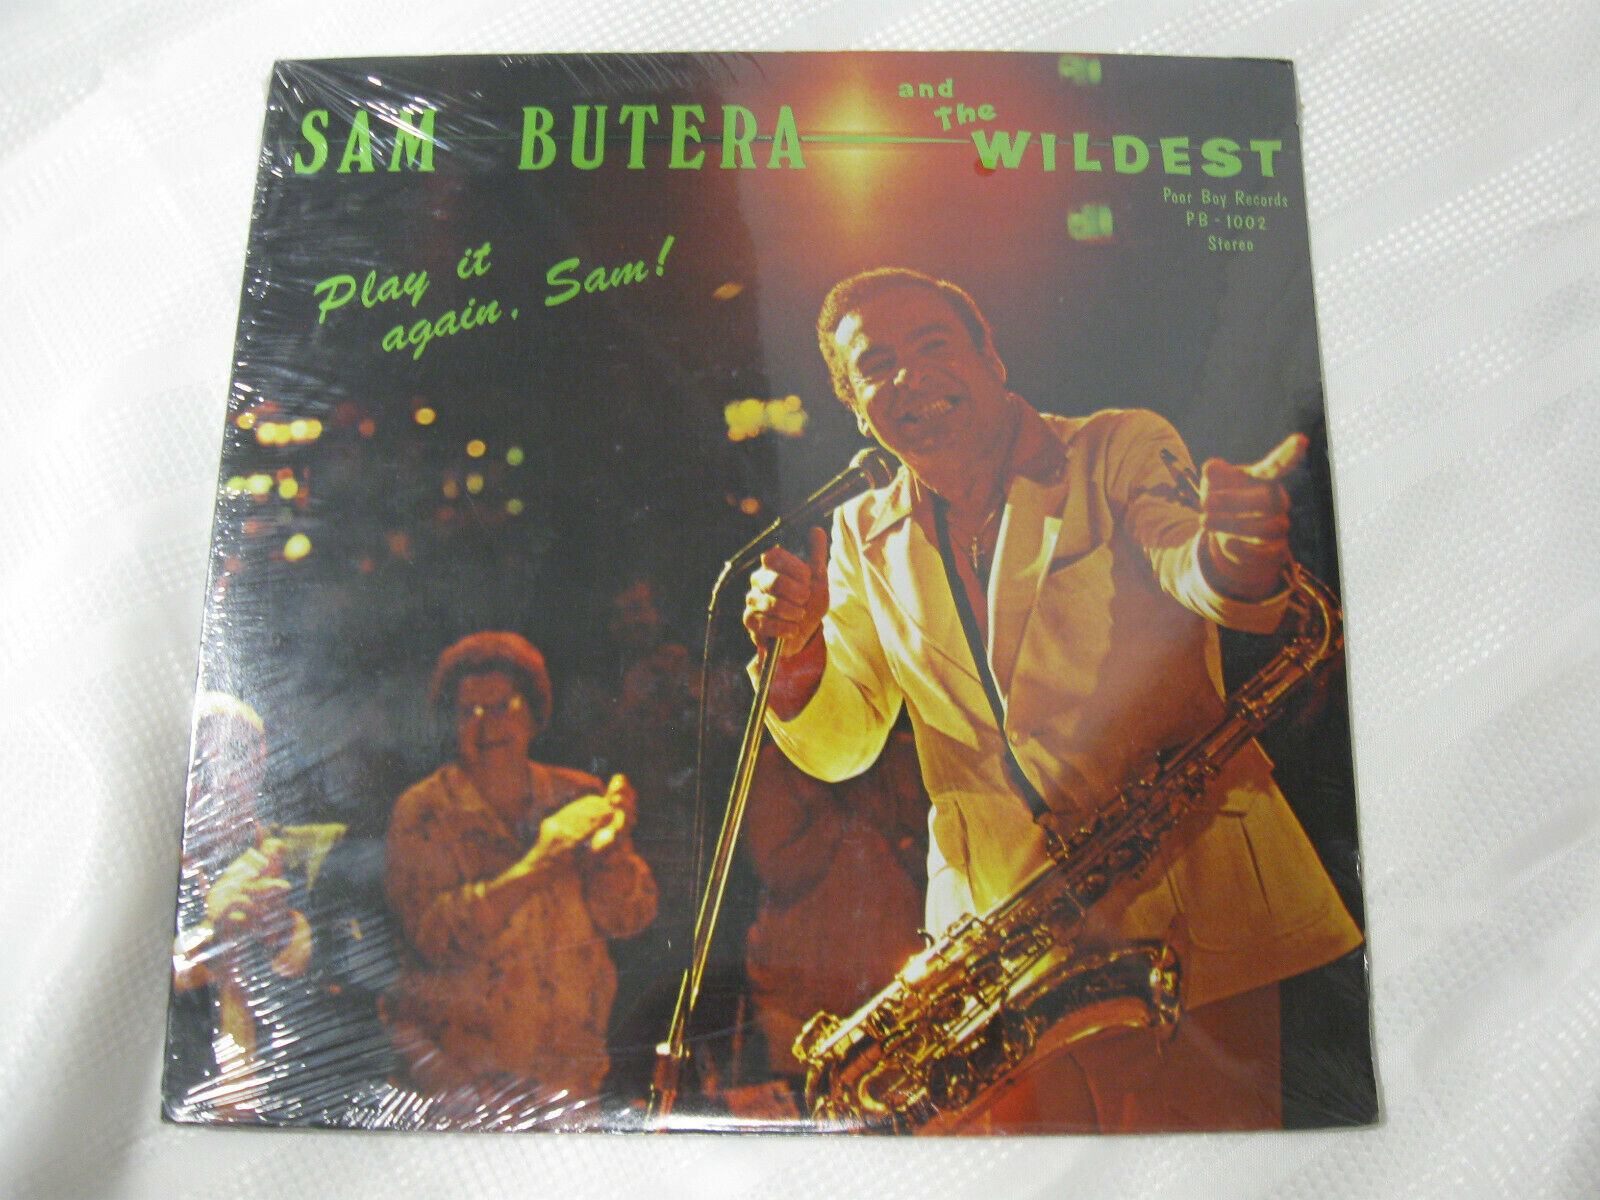 Sam Butera Play It Again Poor Boy PB1002 Vinyl Record Sealed LP SIGNED Cindy image 1